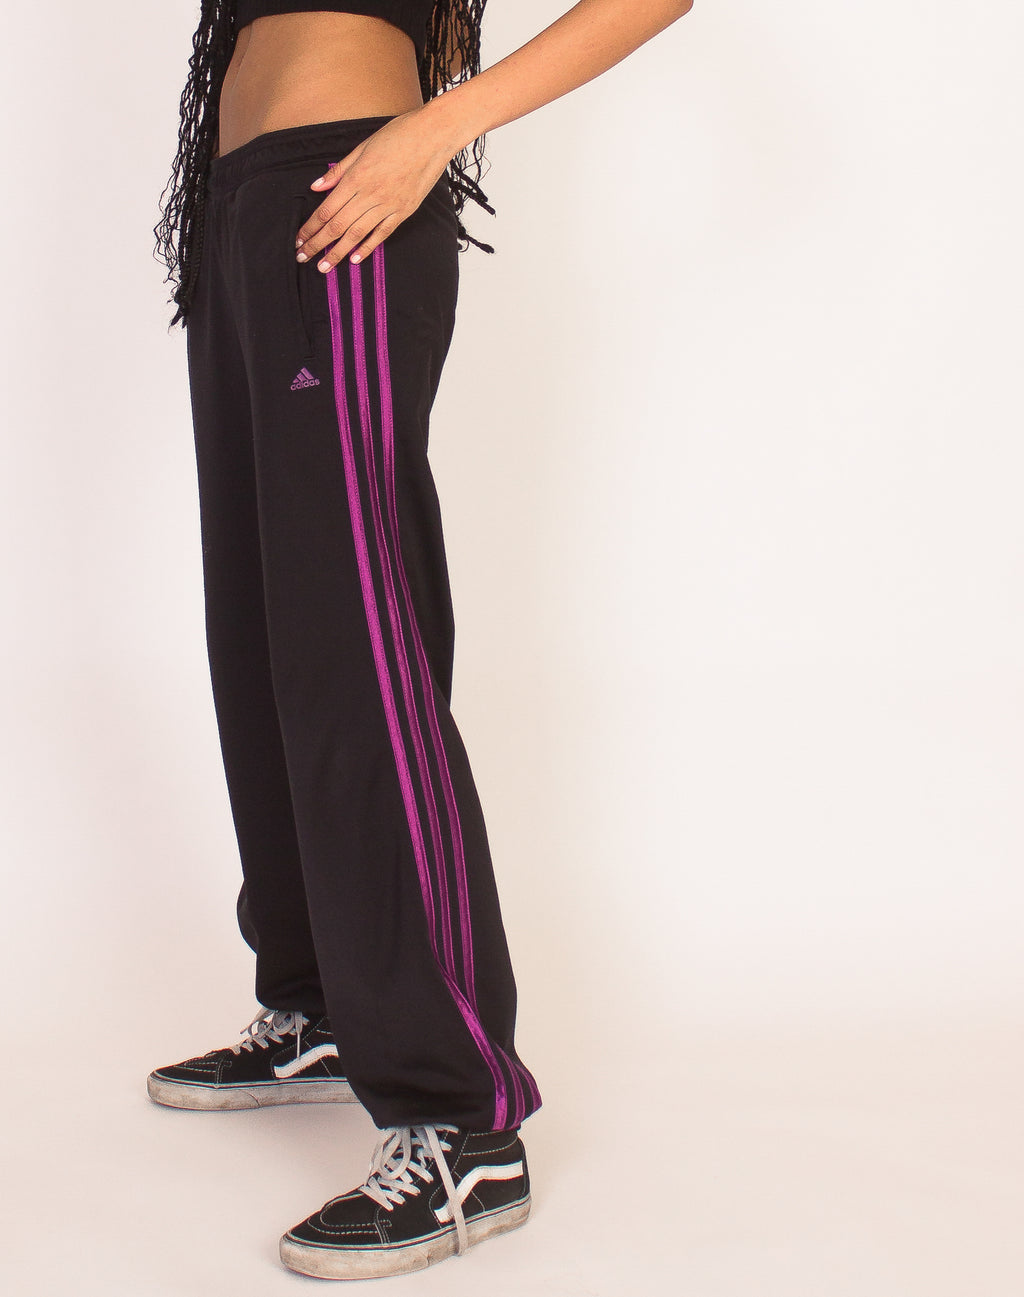 ADIDAS BLACK AND PURPLE JOGGERS